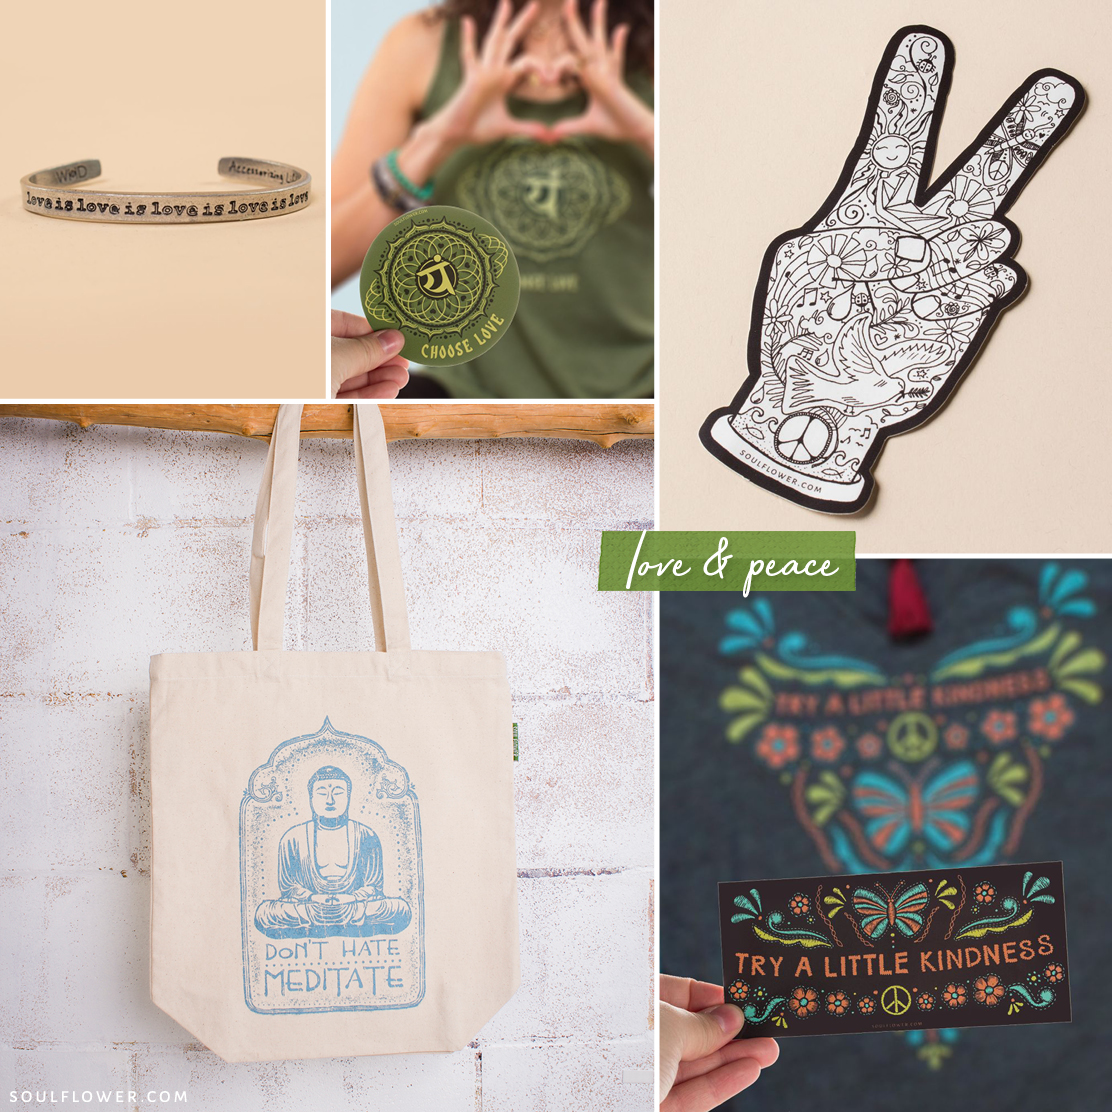 vegan gifts love peace good vibes - Vegan Gift Ideas - Vegan Holiday Gifts